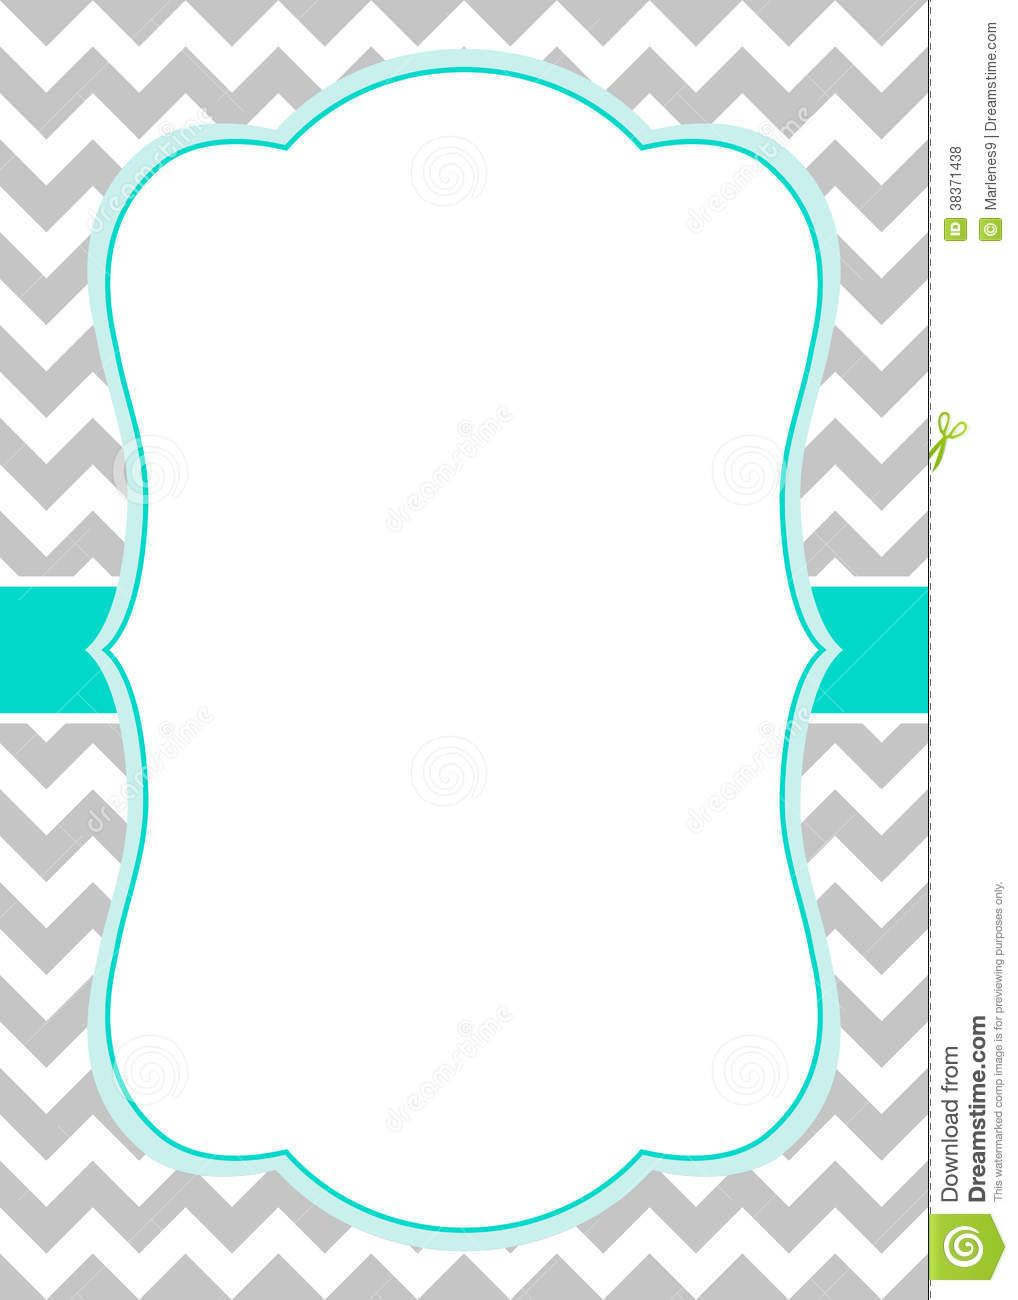 Fabulous Free Chevron Border Templateadmin Admin | Baby Shower Ideas within Unique Baby Shower Borders